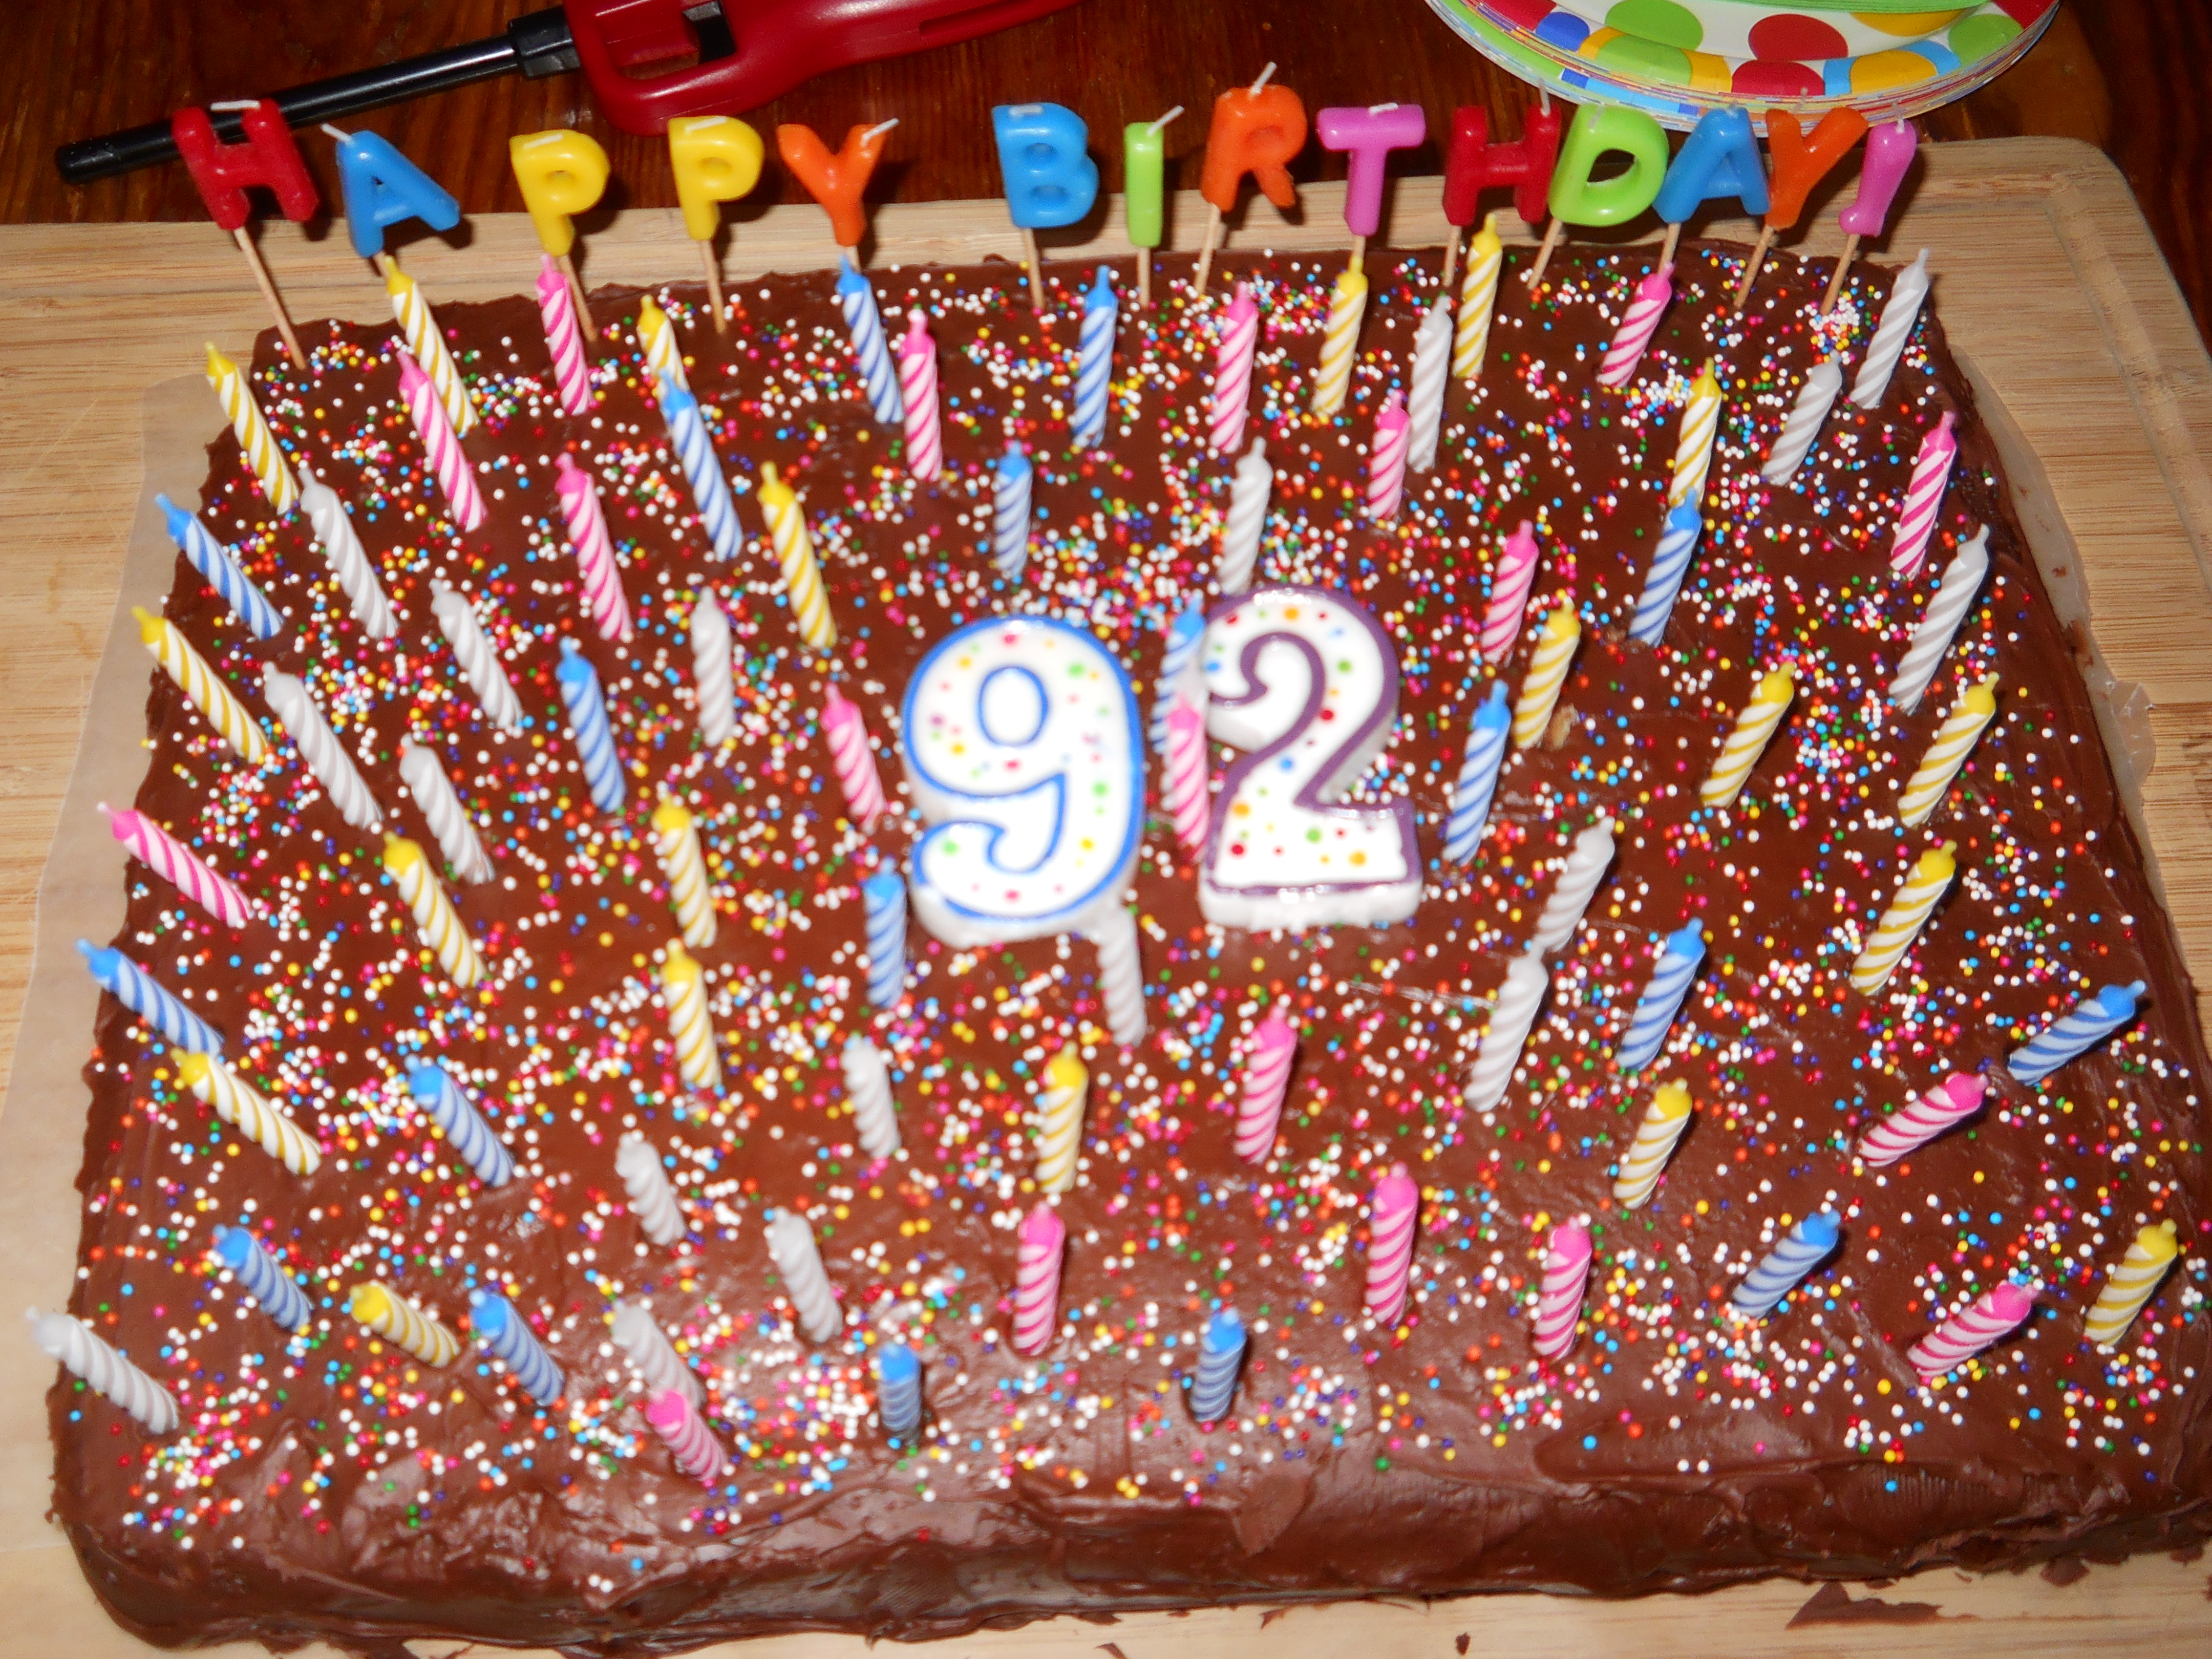 When We Lit The Cake To Present It Mom Not Only Did Room Light Up Like A Fireworks Finale On Fourth Of July Temperature In Entire House